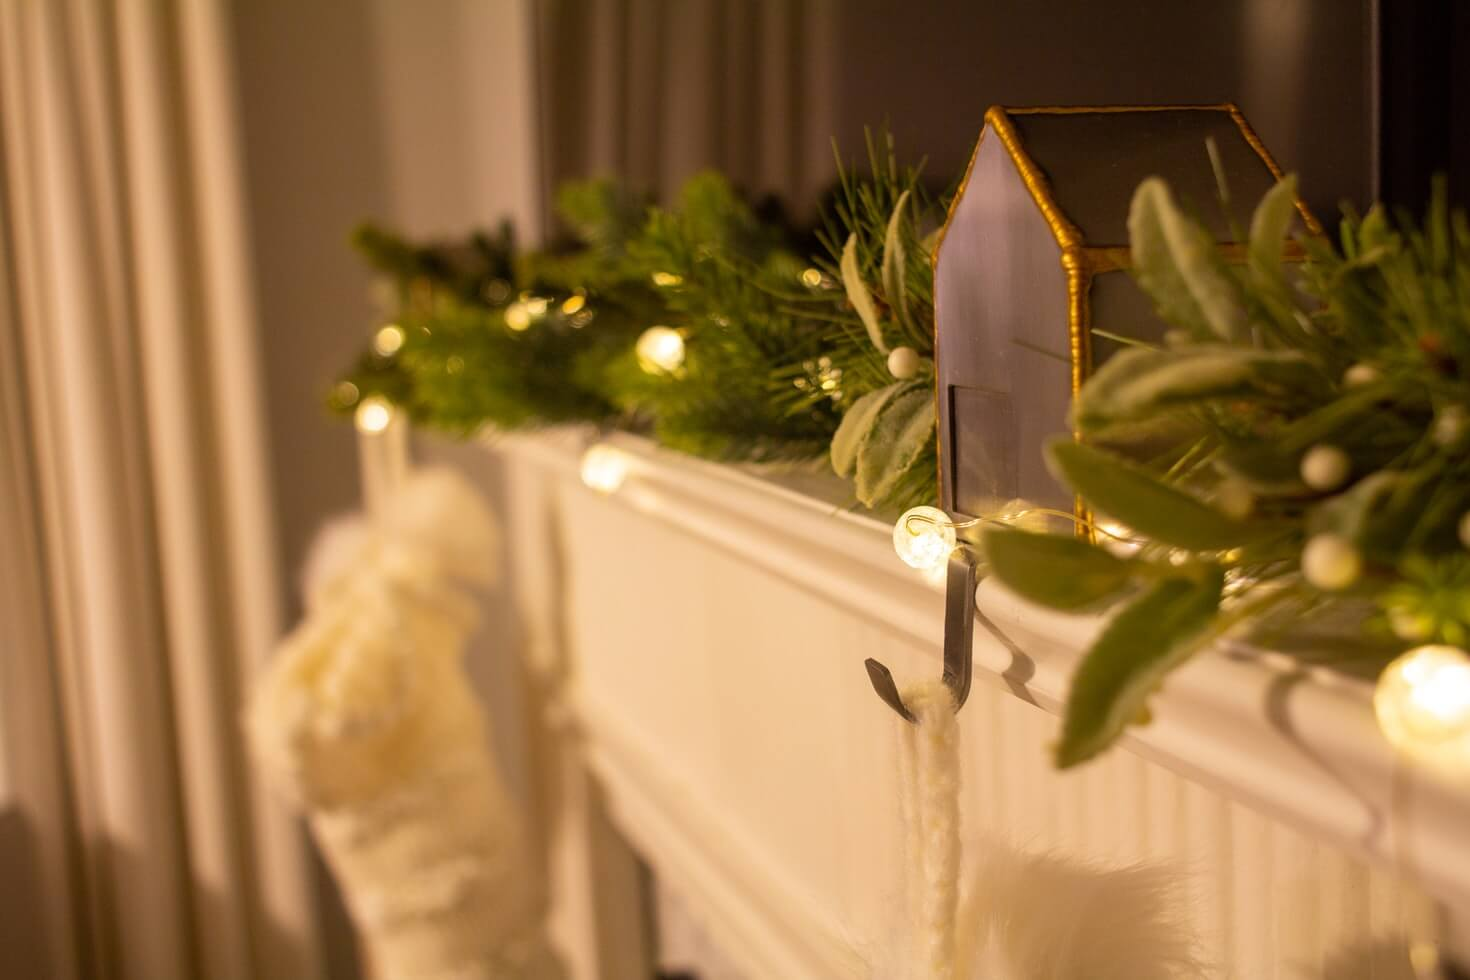 a mantlepiece decorated for festive hosting with evergreen and stockings